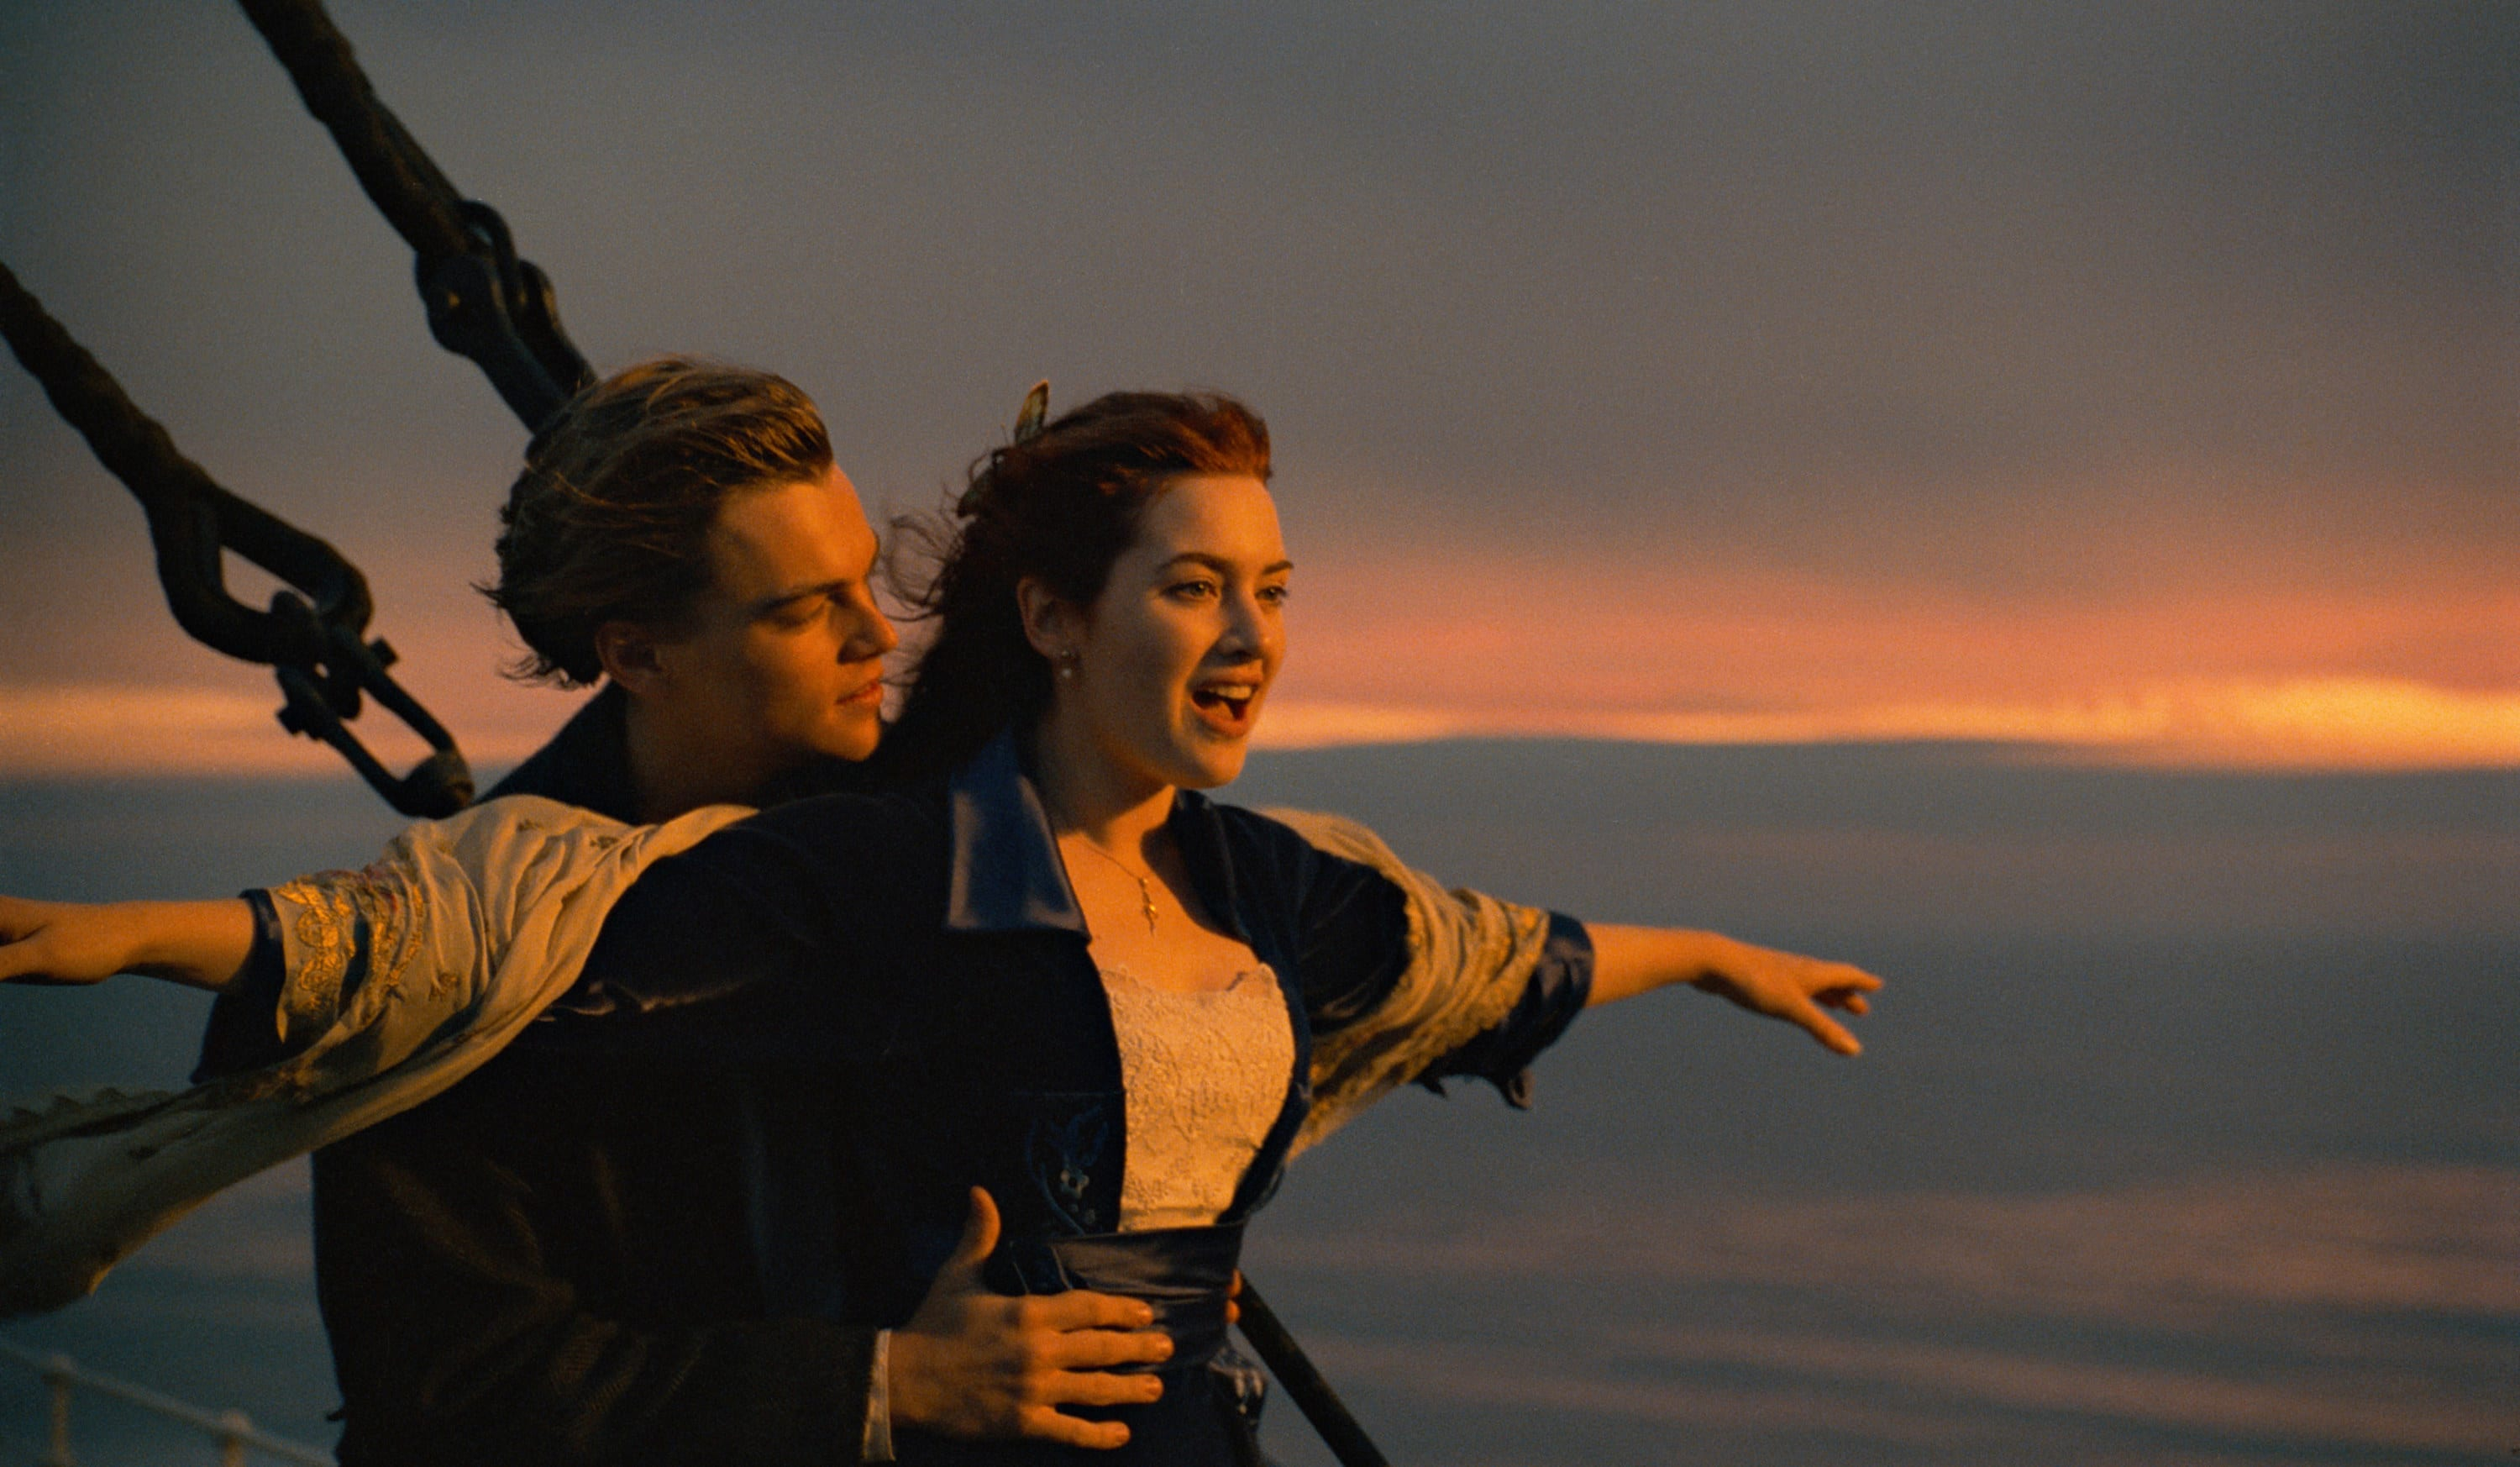 Leo holding Kate Winslet as she spreads her arms open at the front of the Titanic